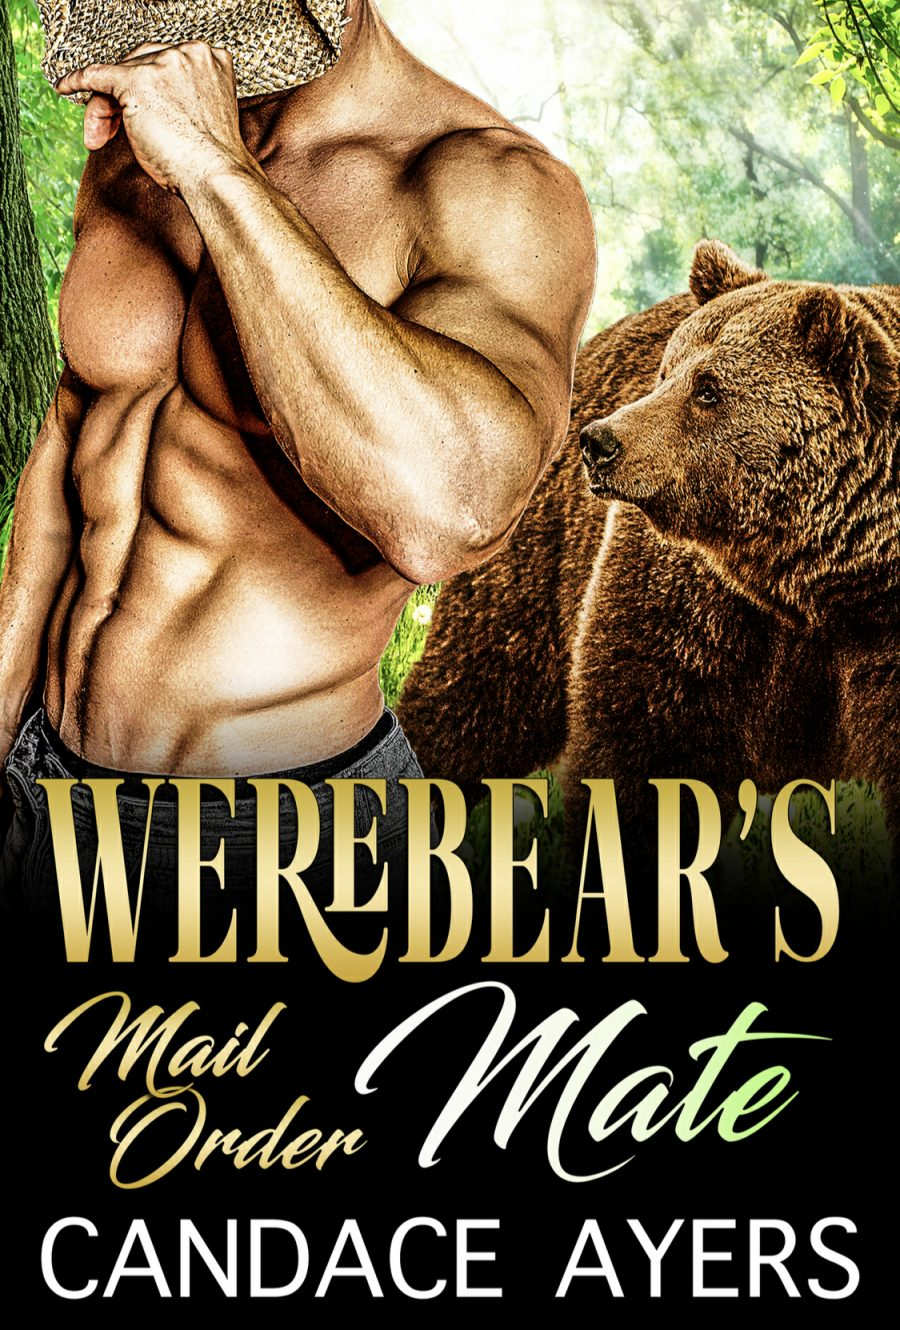 Werebear's Mail Order Mate by Candace Ayers - A Book Review #BookReview #Review #PNR #Romance #Shifters #HEA #KU